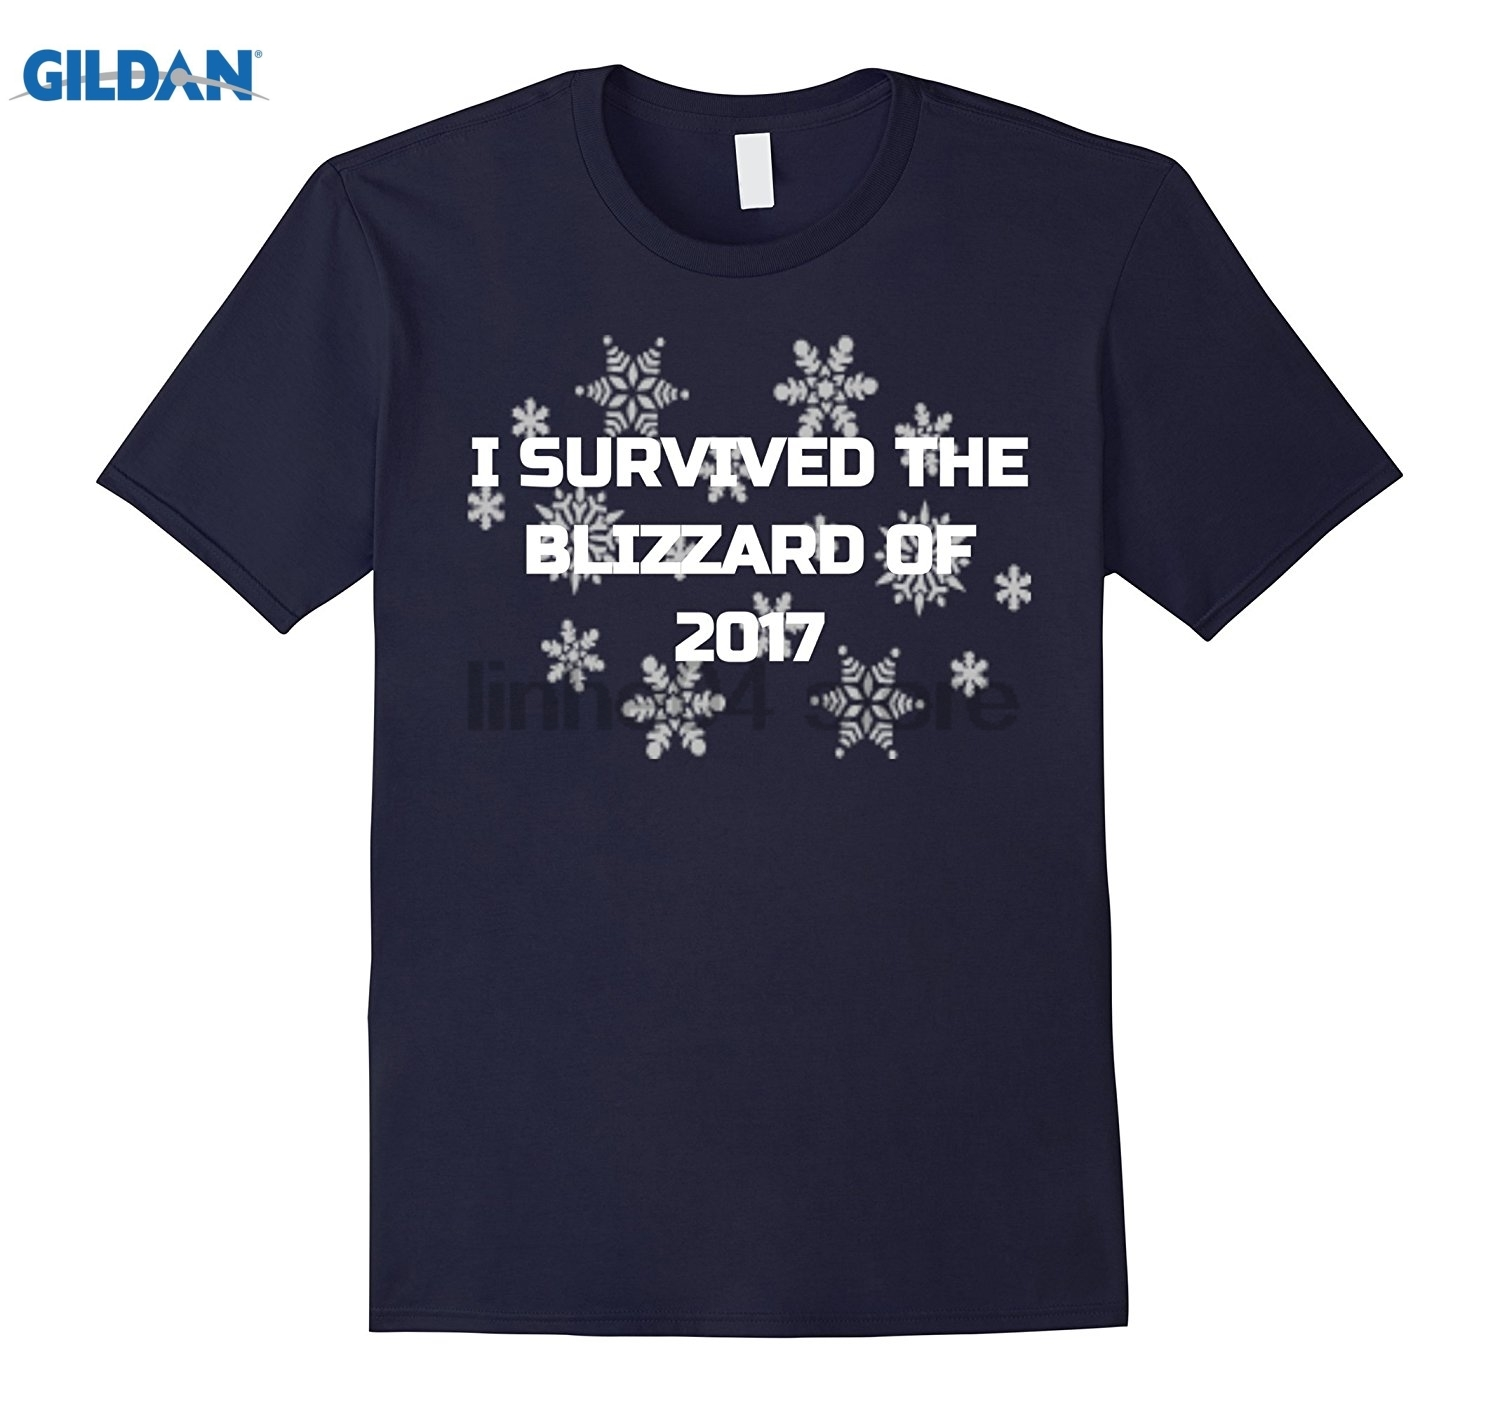 GILDAN I Survived The Blizzard of 2017 Funny Noreaster Shirt summer dress T-shirt